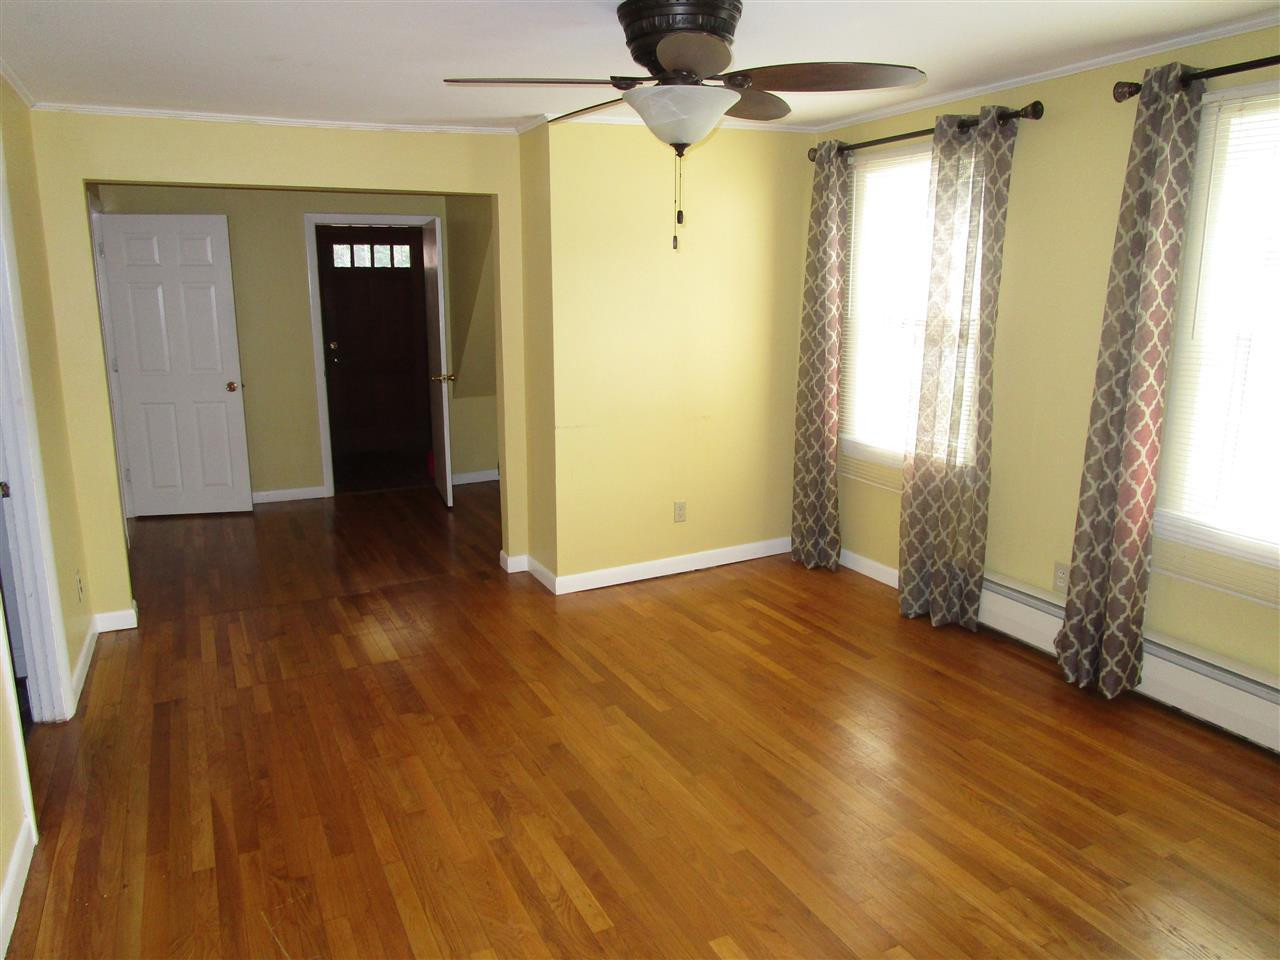 Hardwood Flooring Concord Nh Of 594 Daniel Webster Highway Merrimack Nh Mls 4720074 Gail with Regard to Property Photo